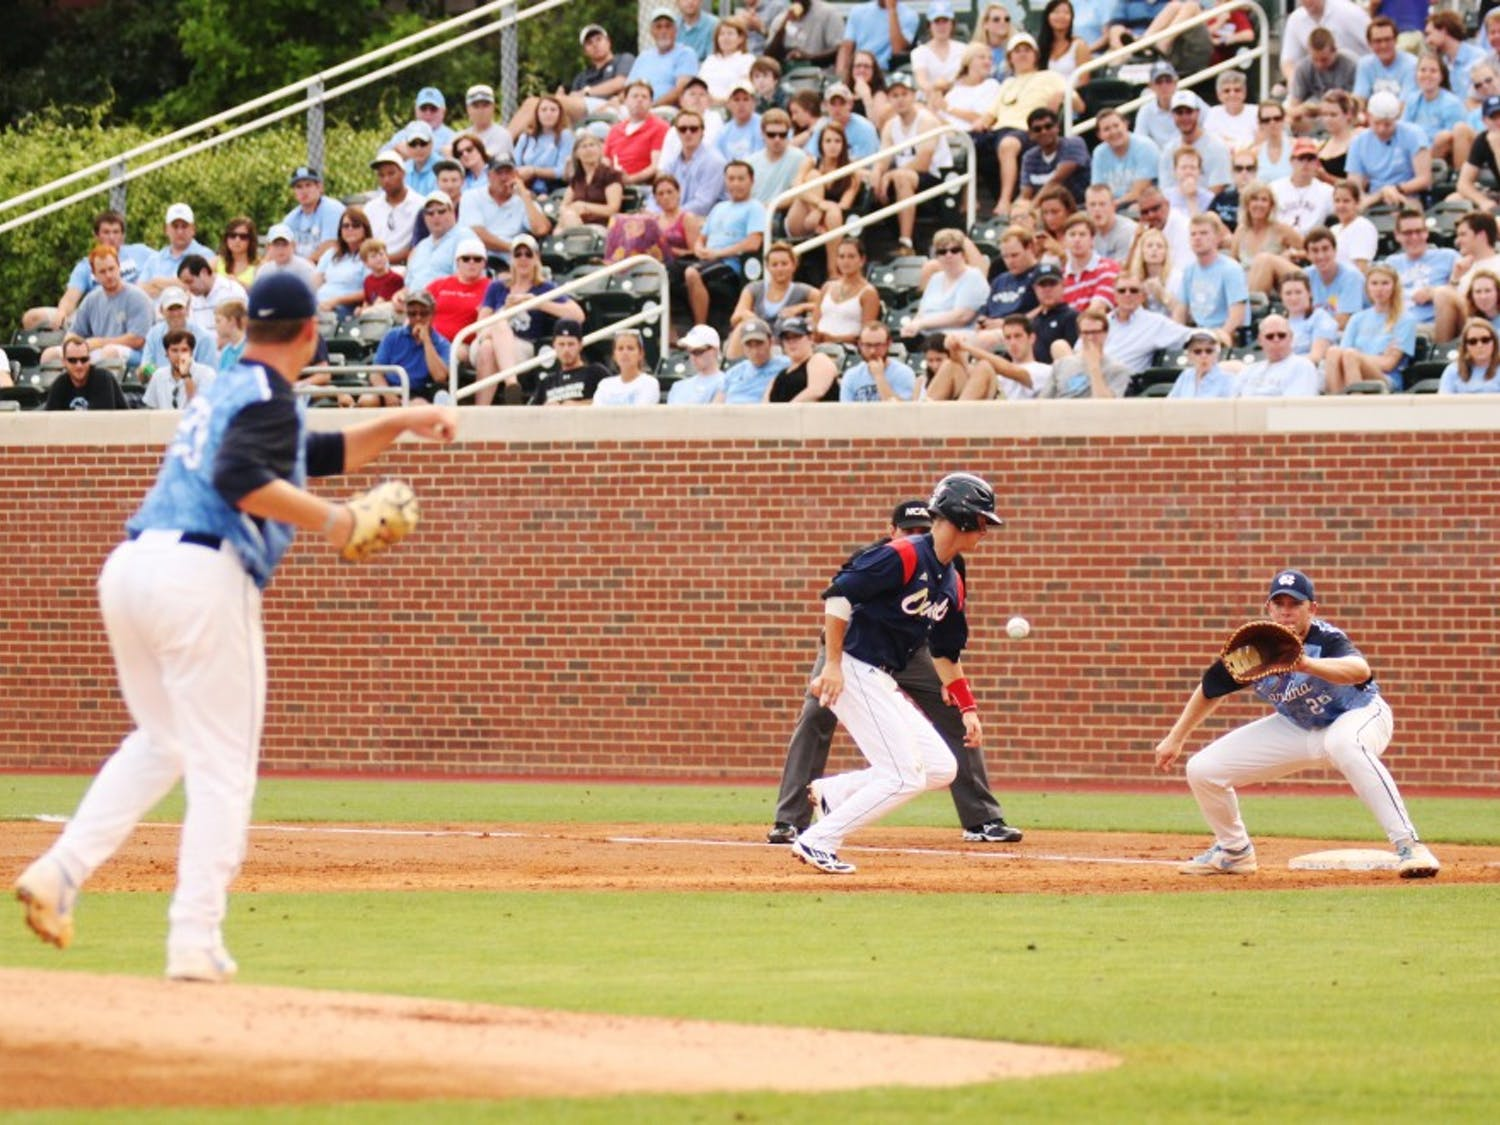 UNC fell 3-2 to Florida Atlantic on Sunday night.